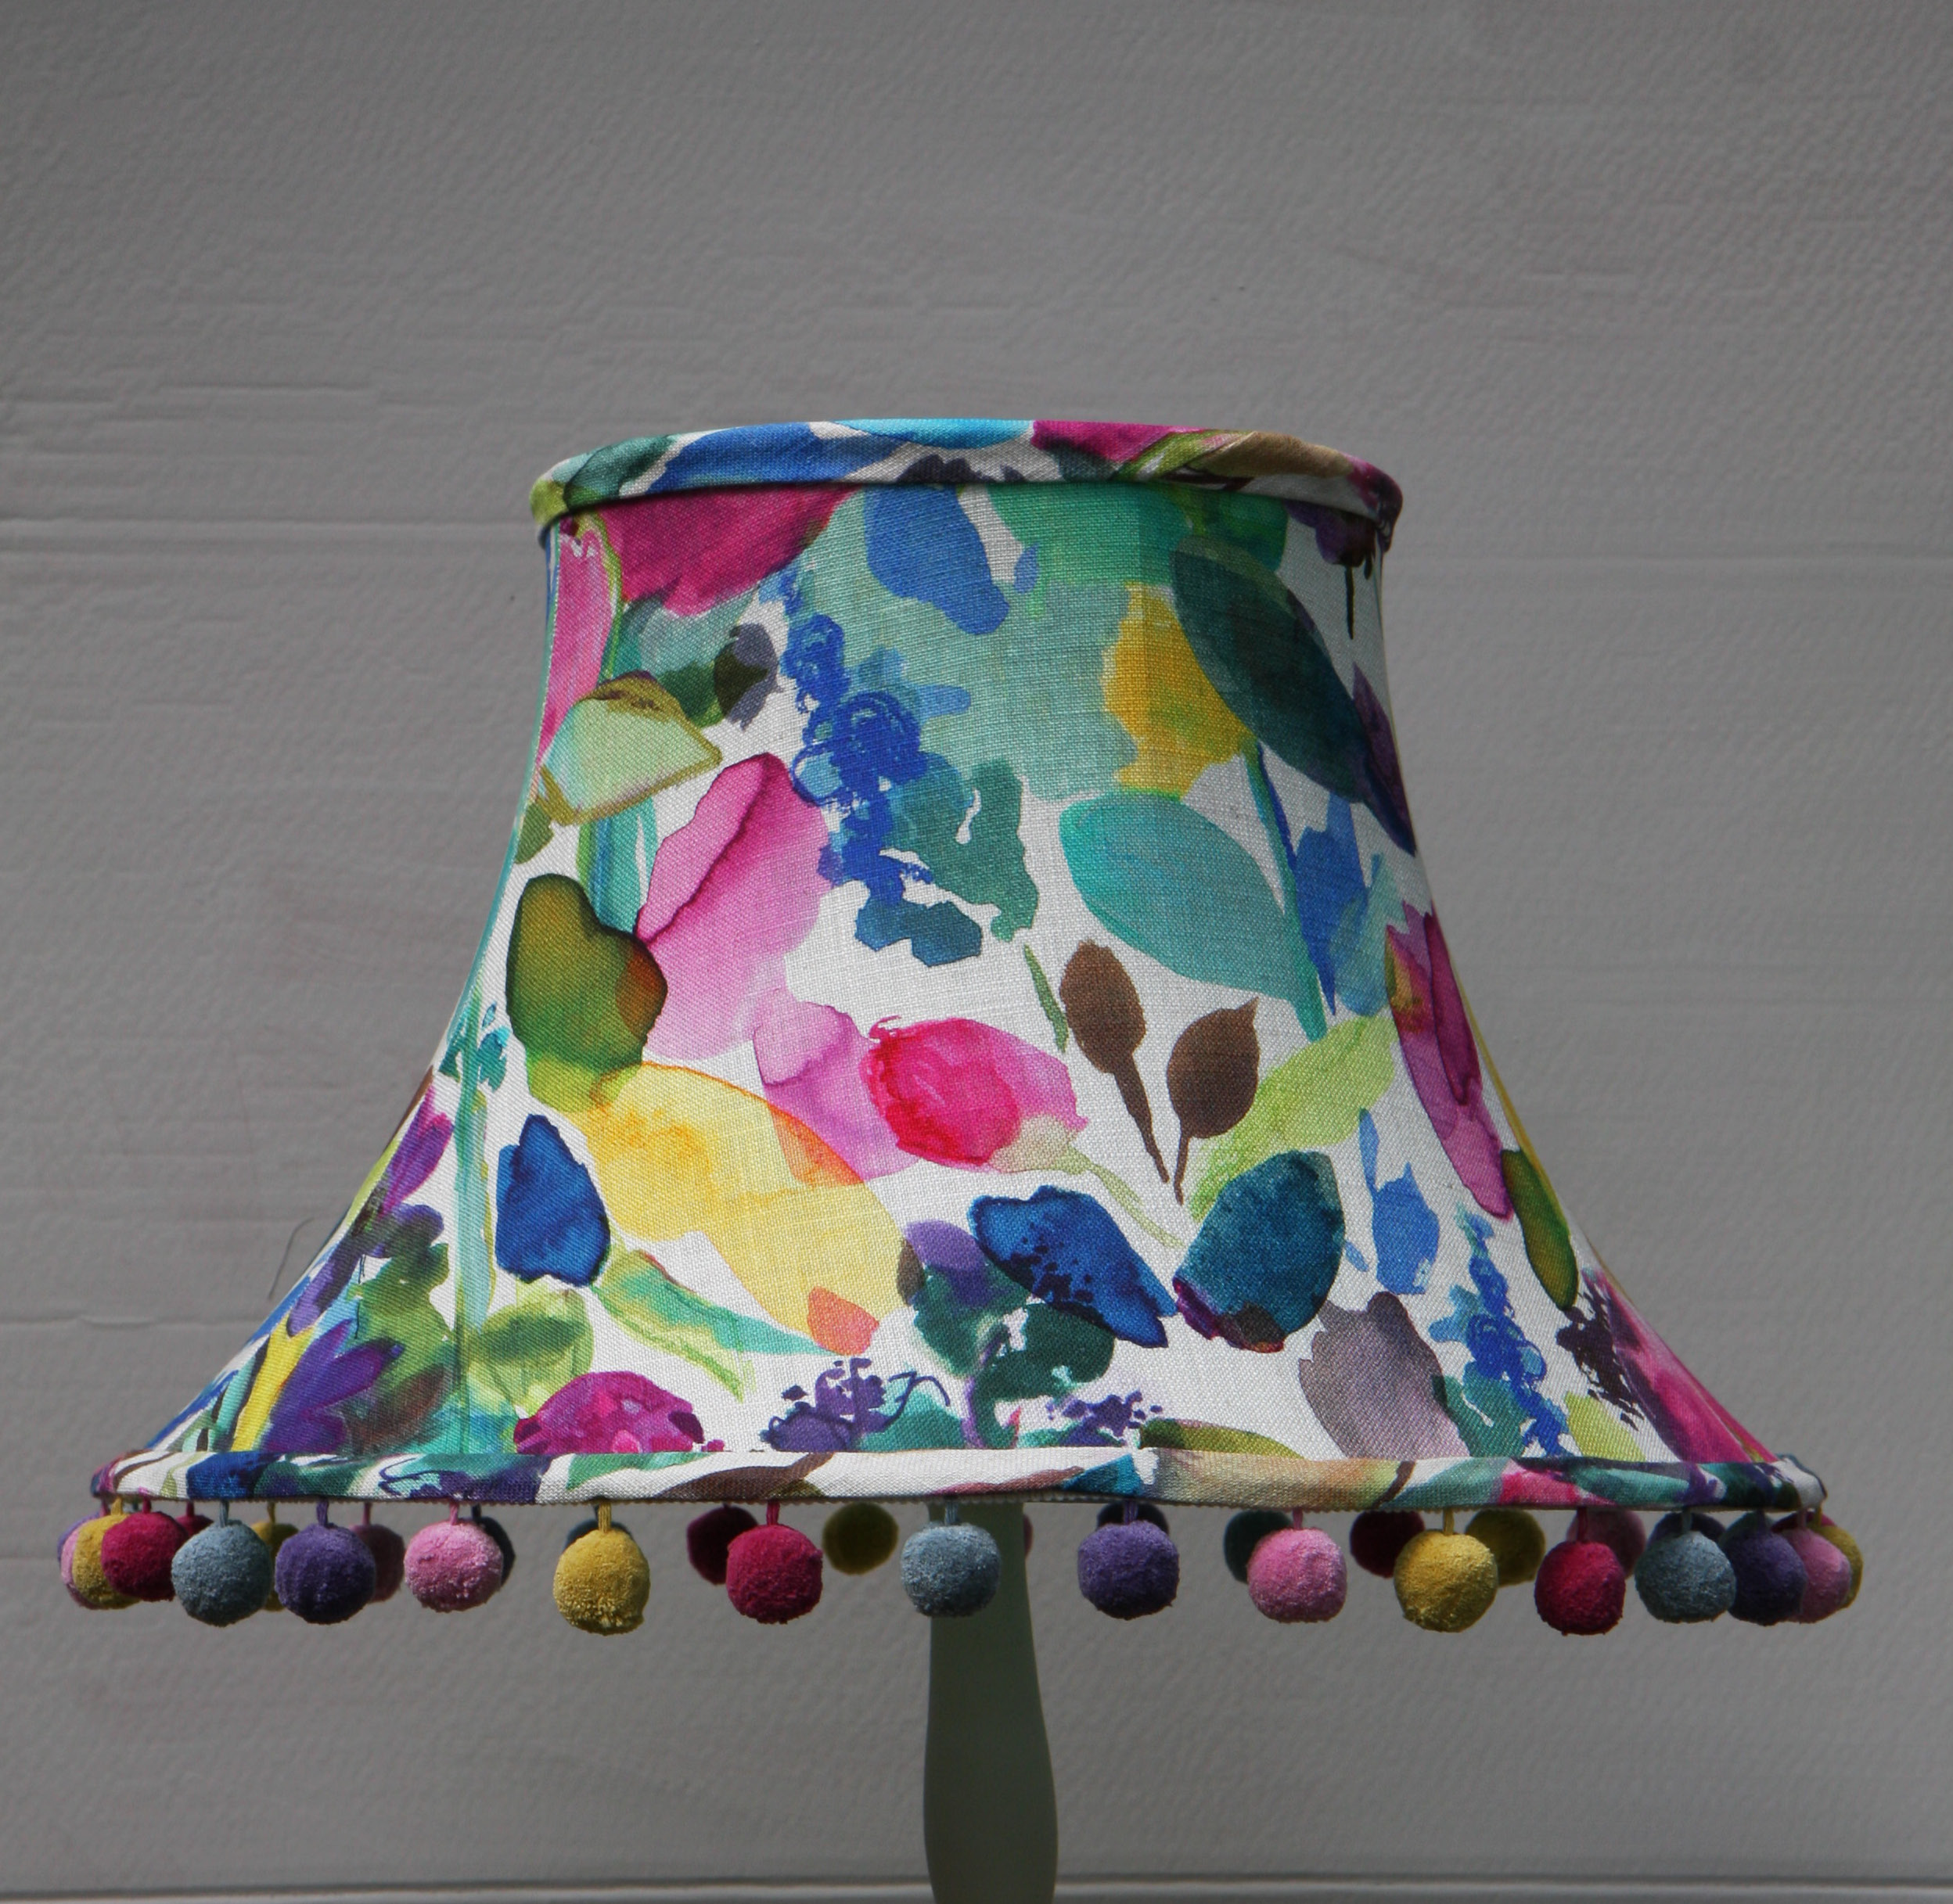 Floral lampshades julias lampshades floral lampshades aloadofball Image collections